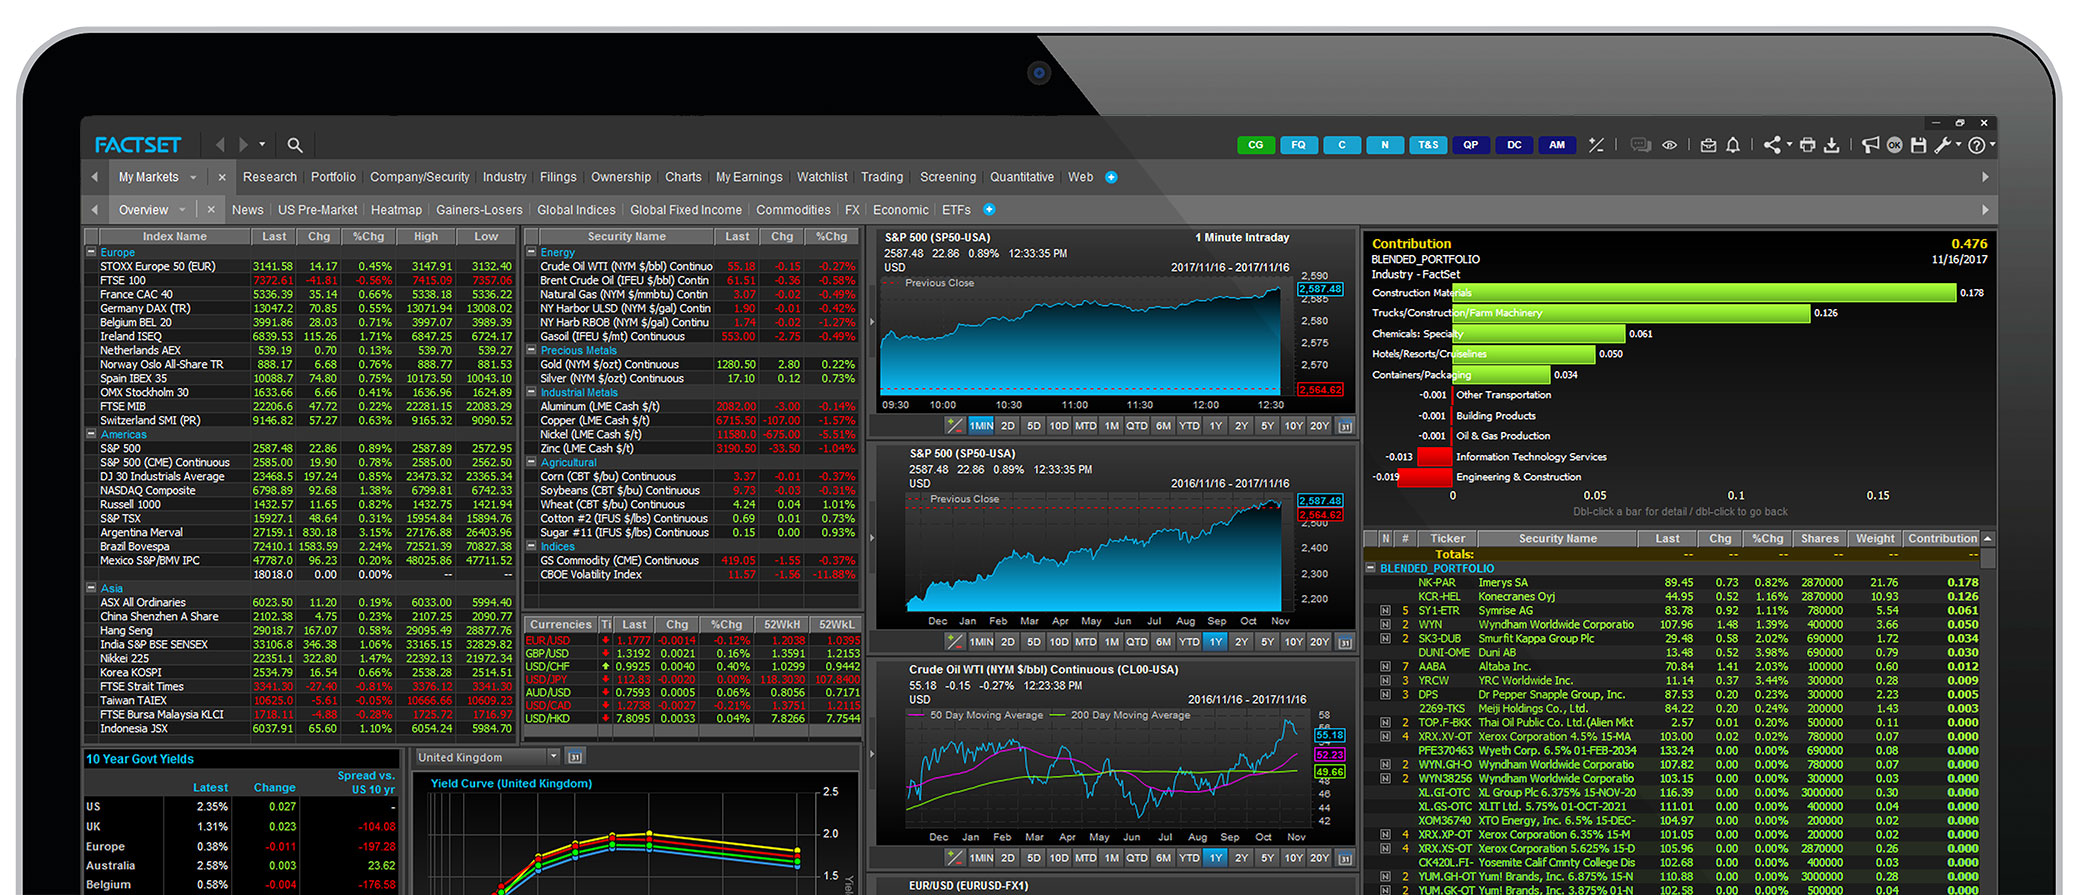 FactSet helps you analyze global markets and portfolios